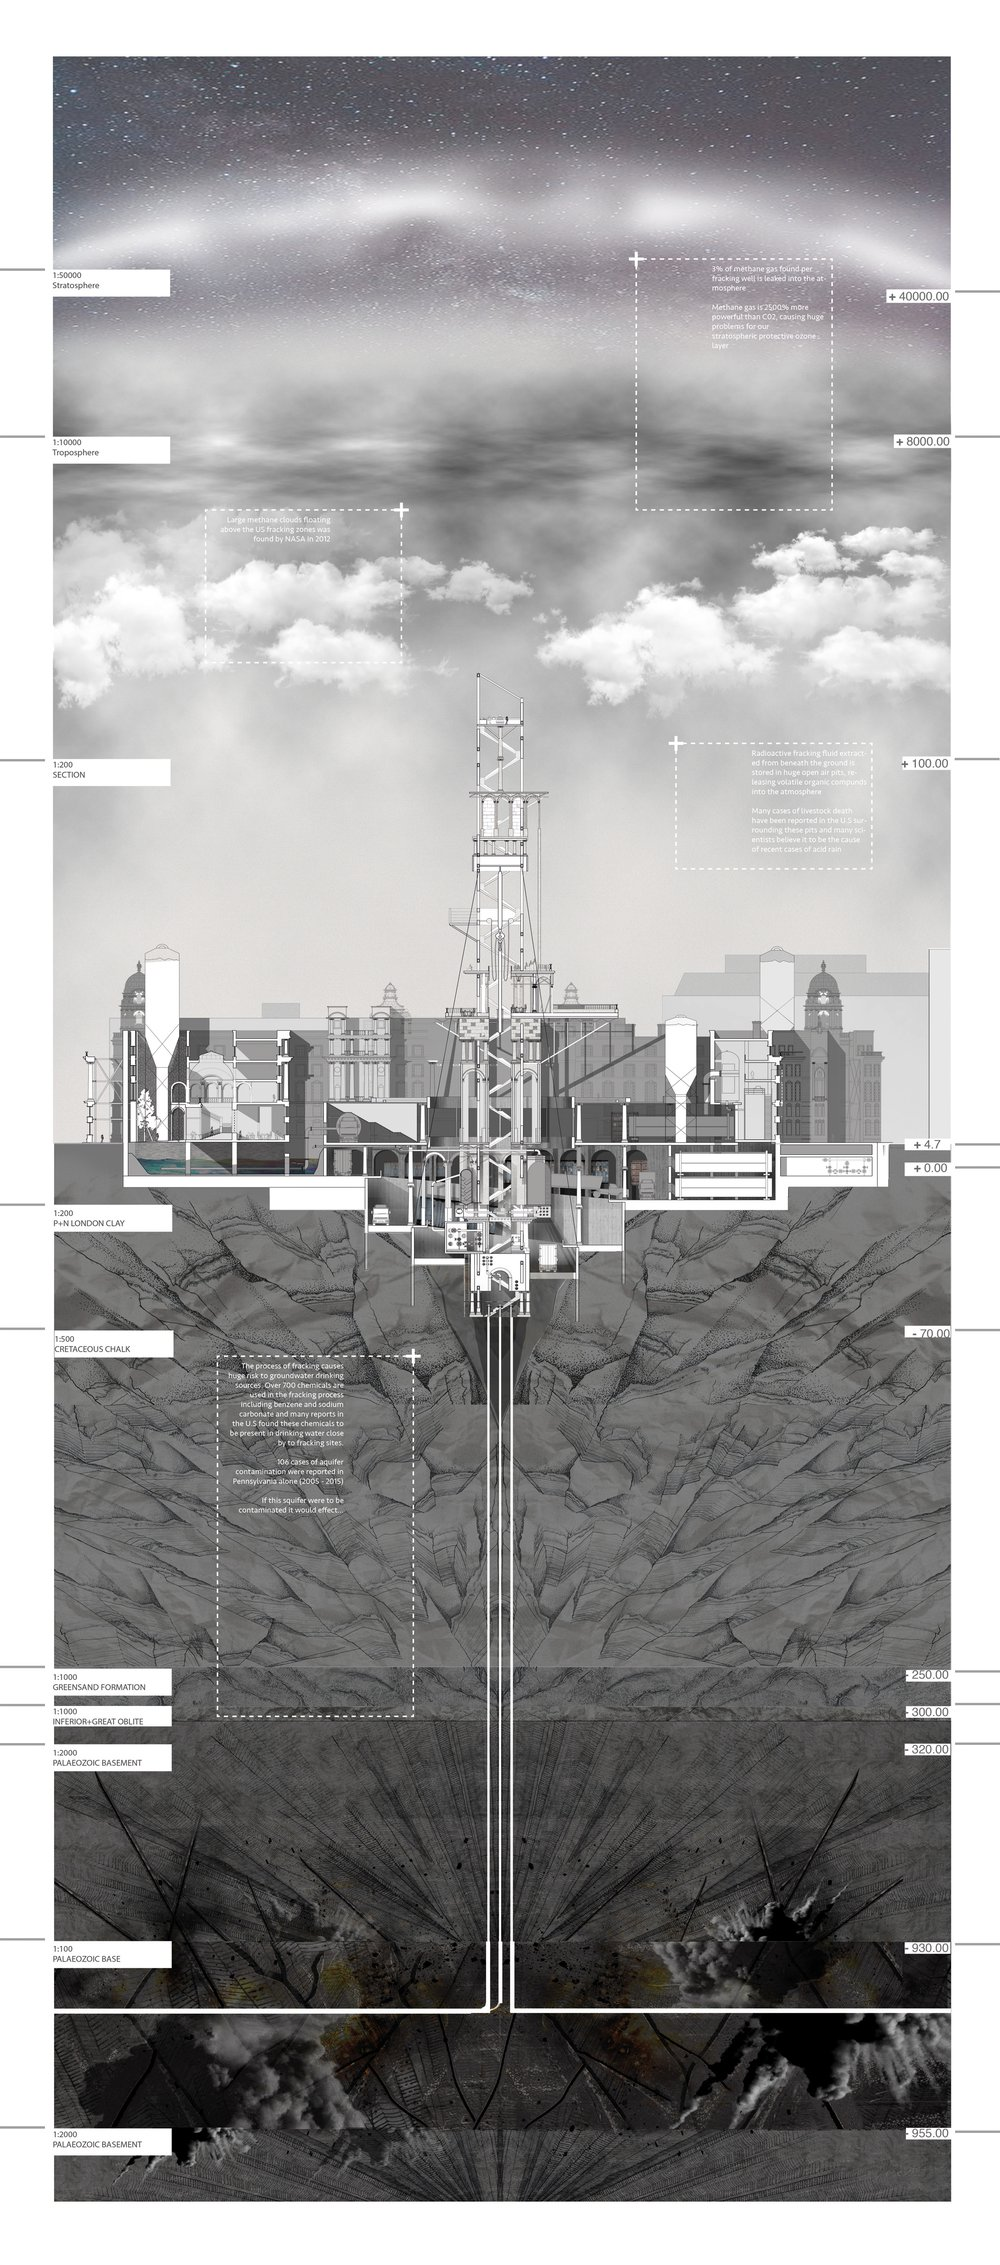 Fracked Section: Connection of varying consequences through distant scales